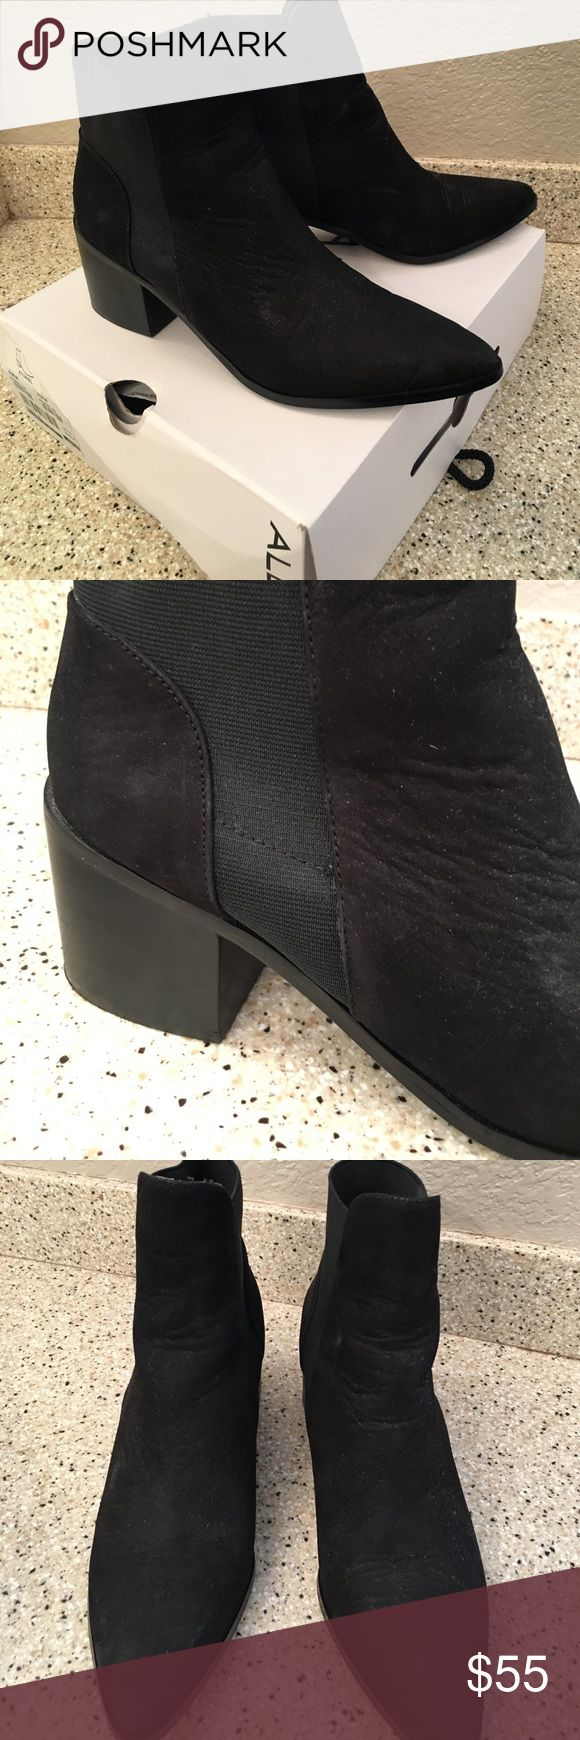 "Black suede Aldo boots. Black suede Aldo boots.   Worn only once in the house!  Brand new condition!  Great ""chunky"" heel. Aldo Shoes Ankle Boots & Booties"